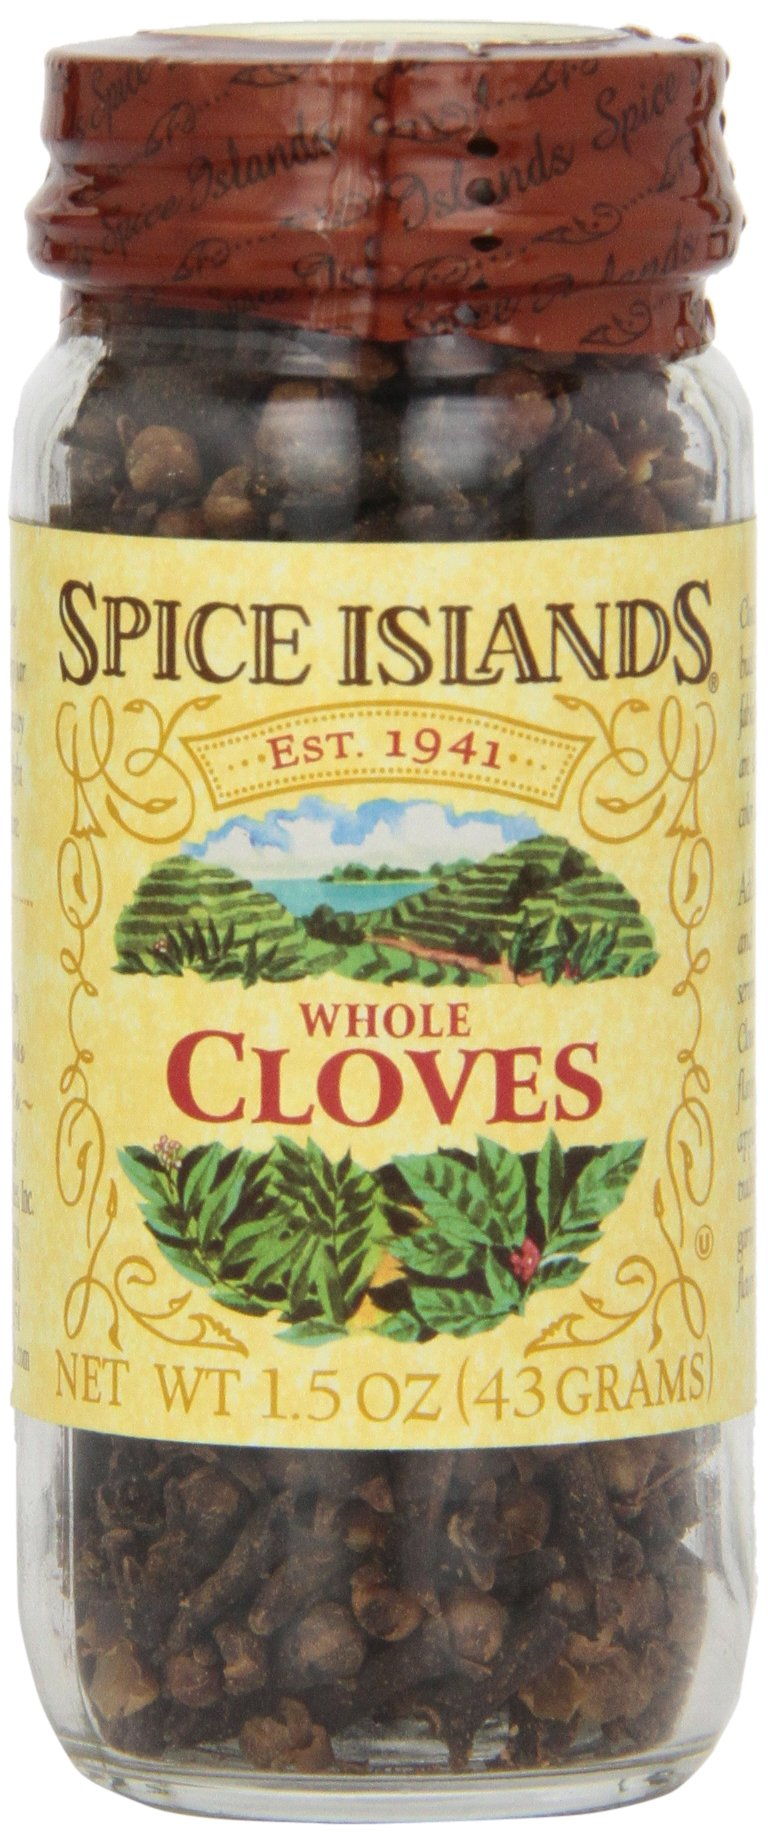 Spice Islands Cloves, Whole, 1.5-Ounce (Pack of 3)